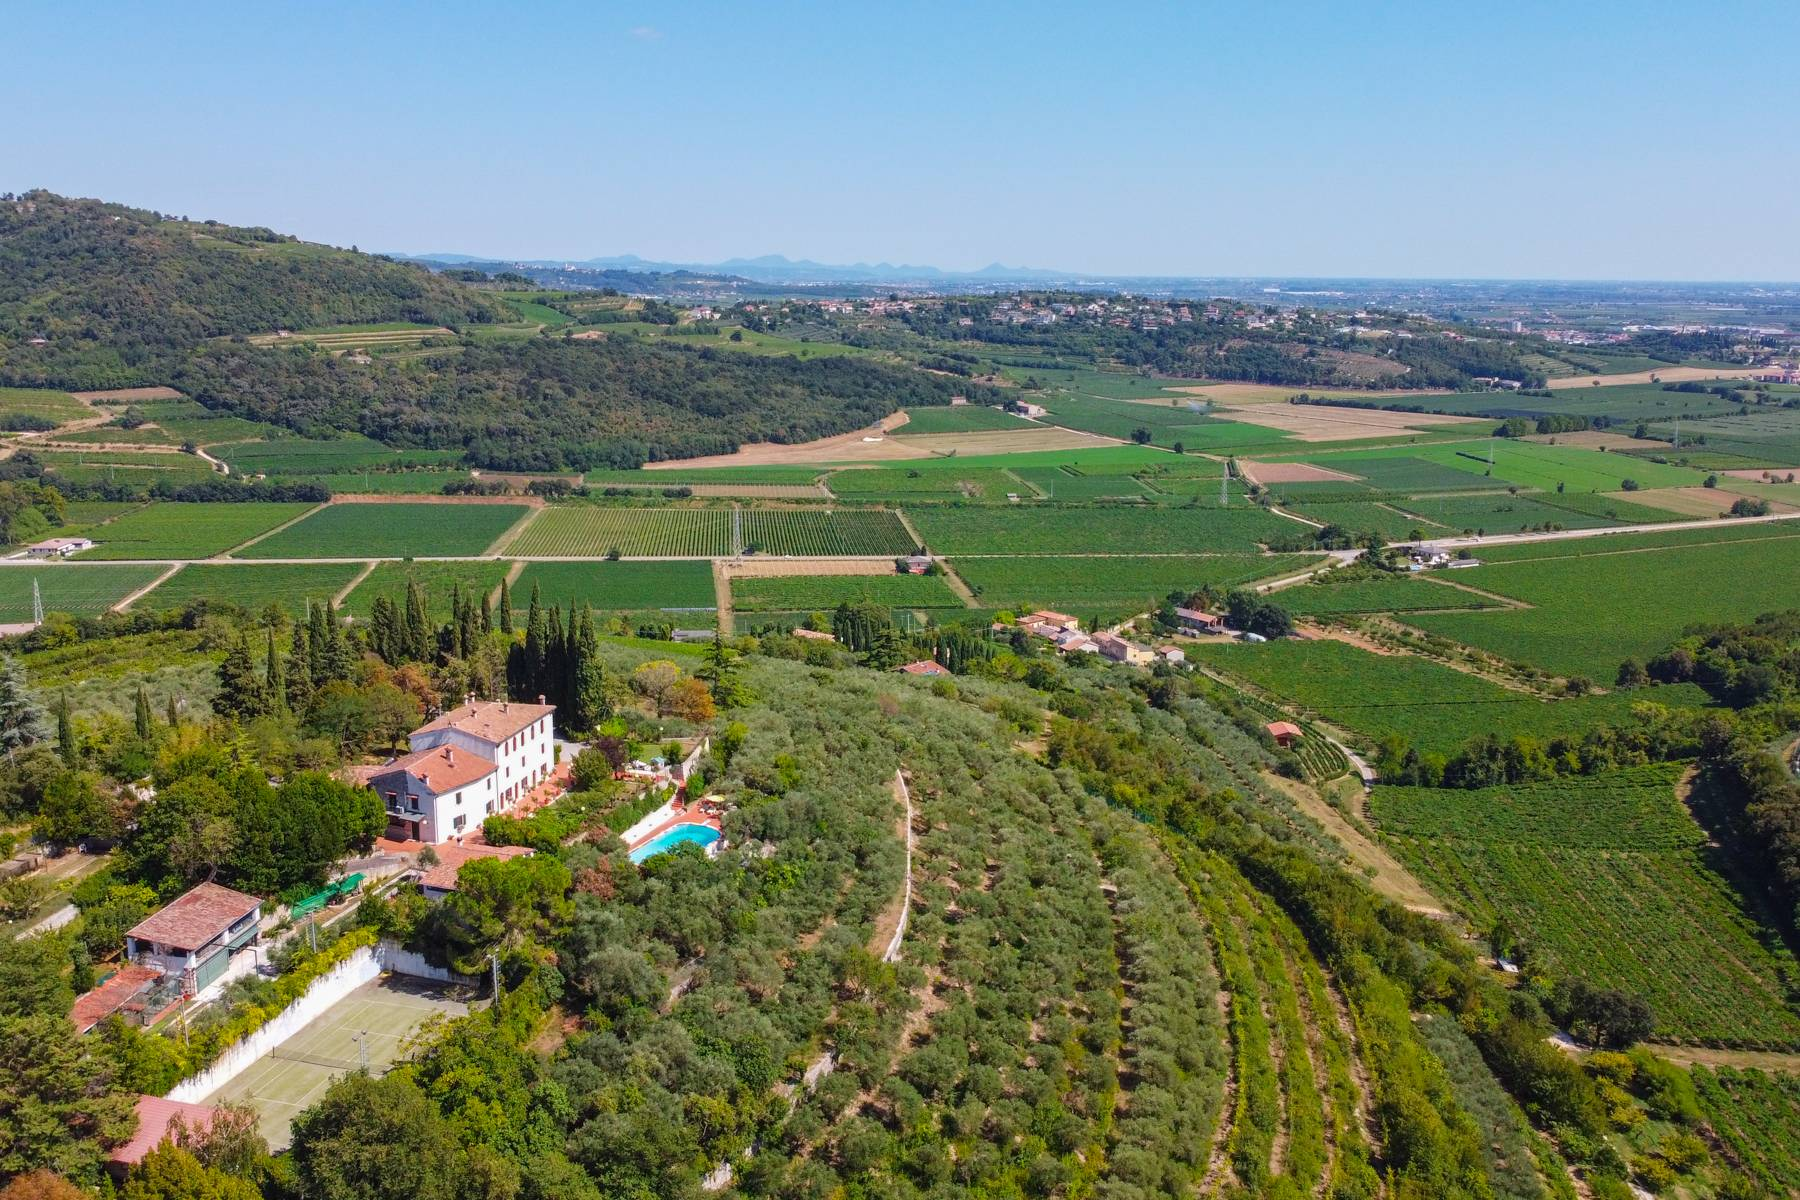 Historic country villa with swimming pool, tennis court and estate on the hills of Verona - 3